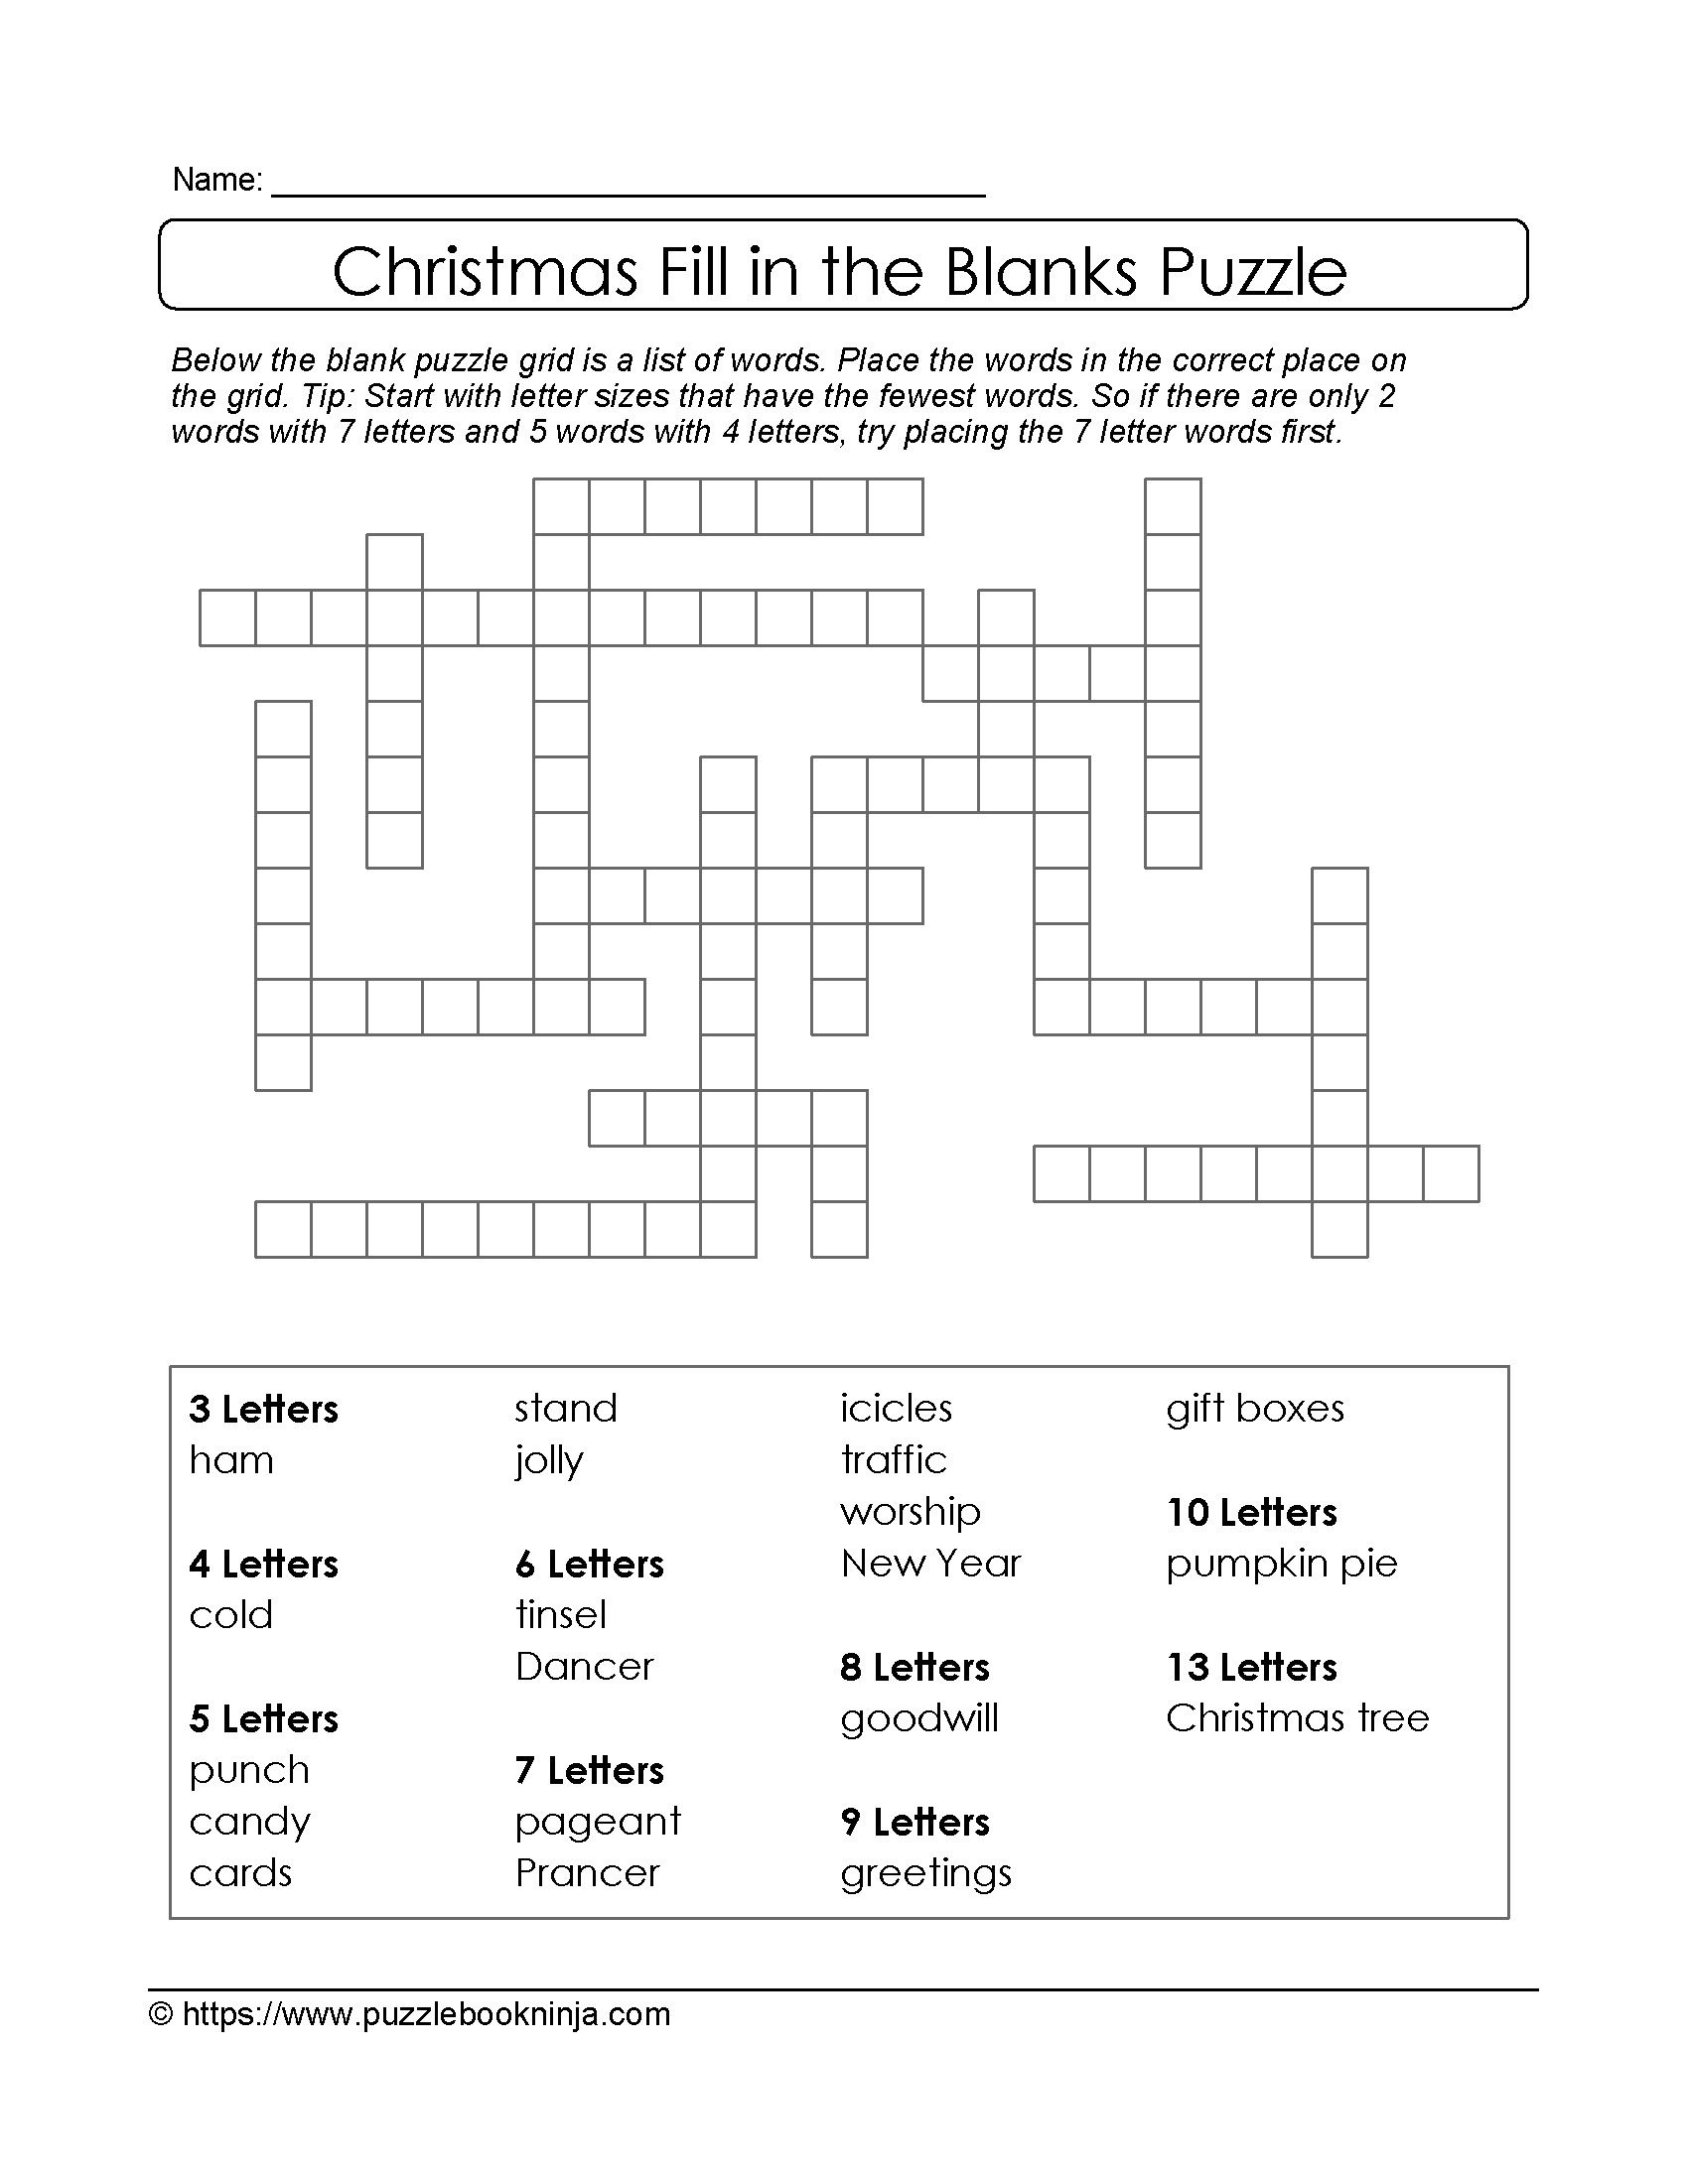 Freebie Xmas Puzzle To Print. Fill In The Blanks Crossword Like - Crossword Puzzles Printable 8Th Grade